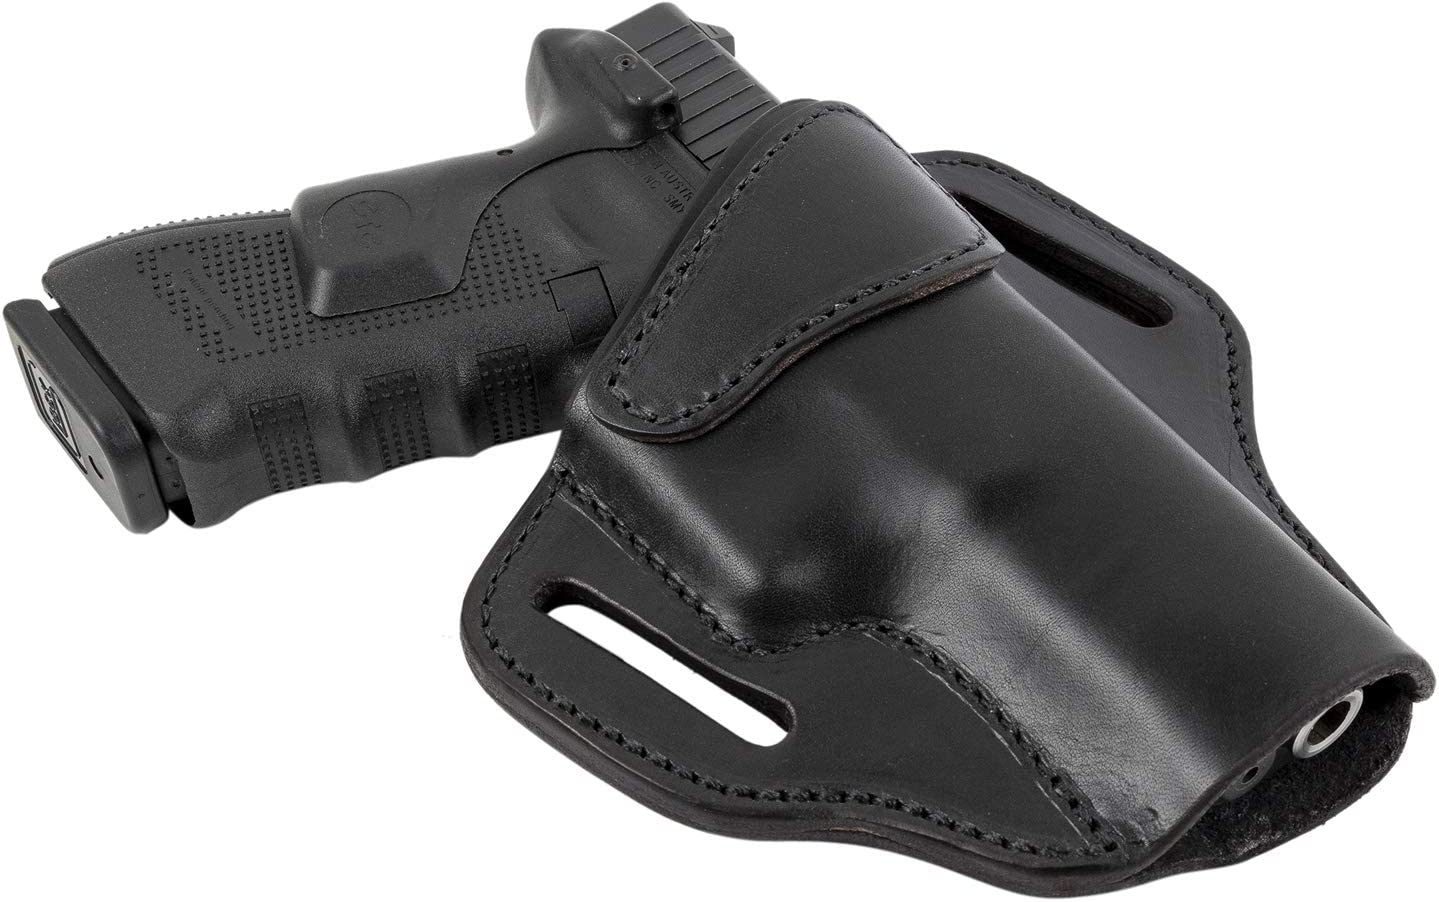 2021 spring and summer new Relentless Tactical Ultimate Leather Holster i OWB Made New arrival Slot 2